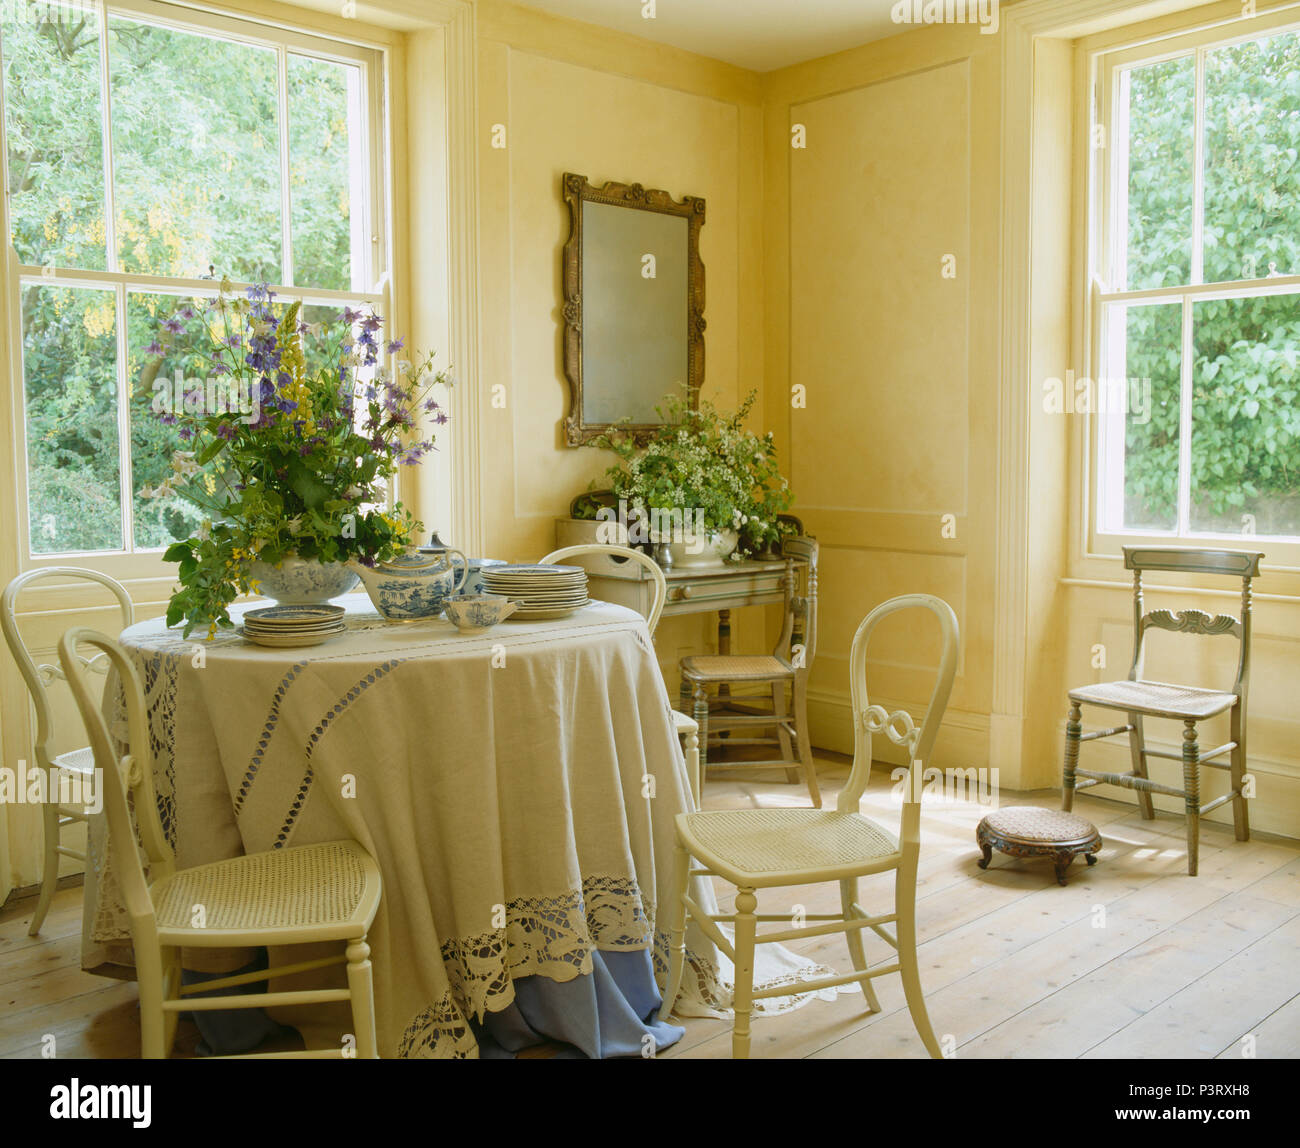 Cream painted antique chairs at circular table with cream cloth in elegant  cream dining room with wooden flooring - Cream Painted Antique Chairs At Circular Table With Cream Cloth In